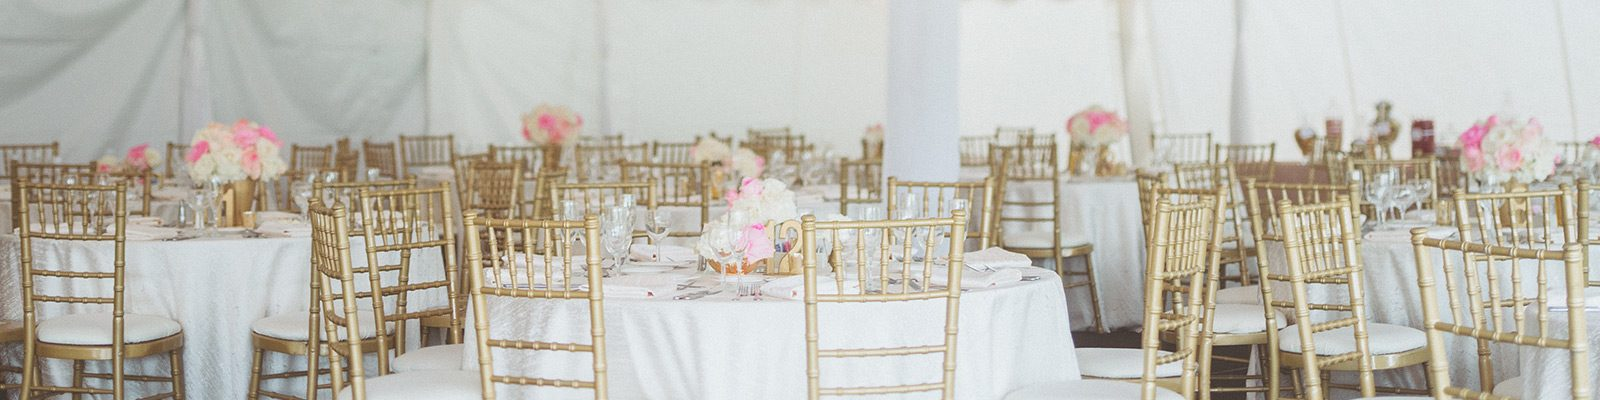 table chair rentals 2 comfy bar chairs your guide to wedding well dressed tables